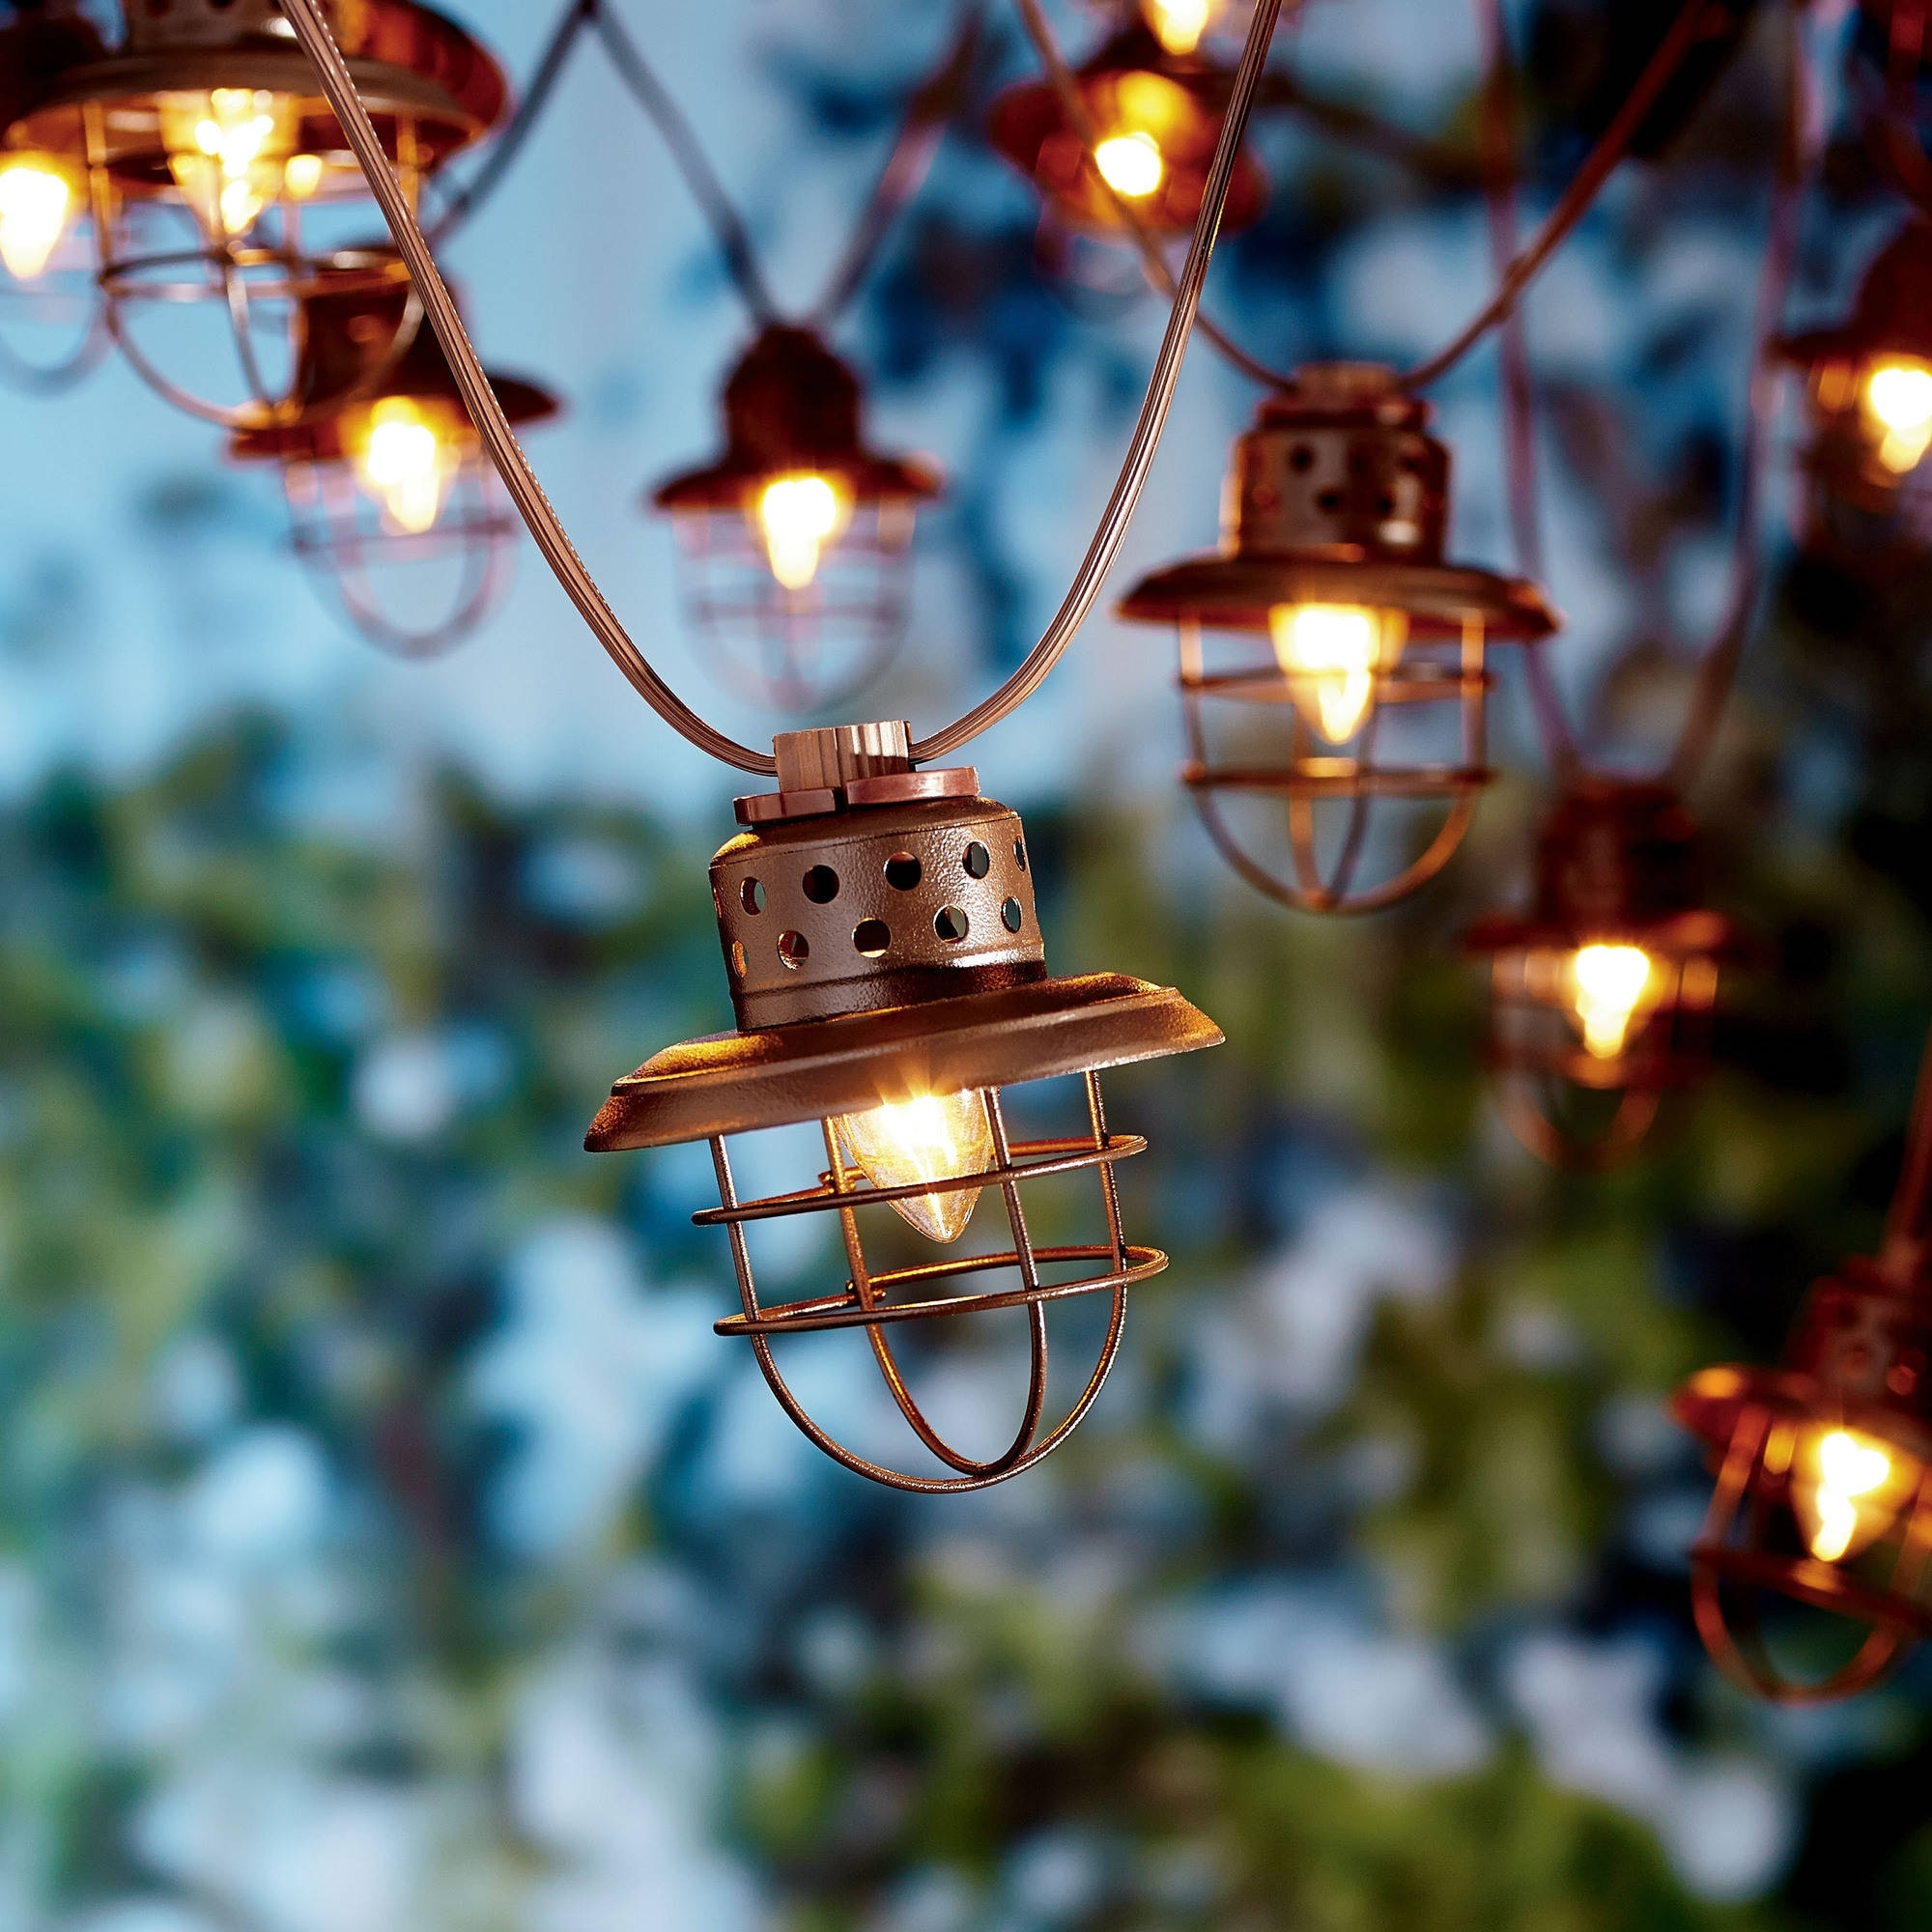 Better Homes And Gardens Outdoor Vintage Cage Lantern String Lights inside Outdoor Plastic Lanterns (Image 4 of 20)